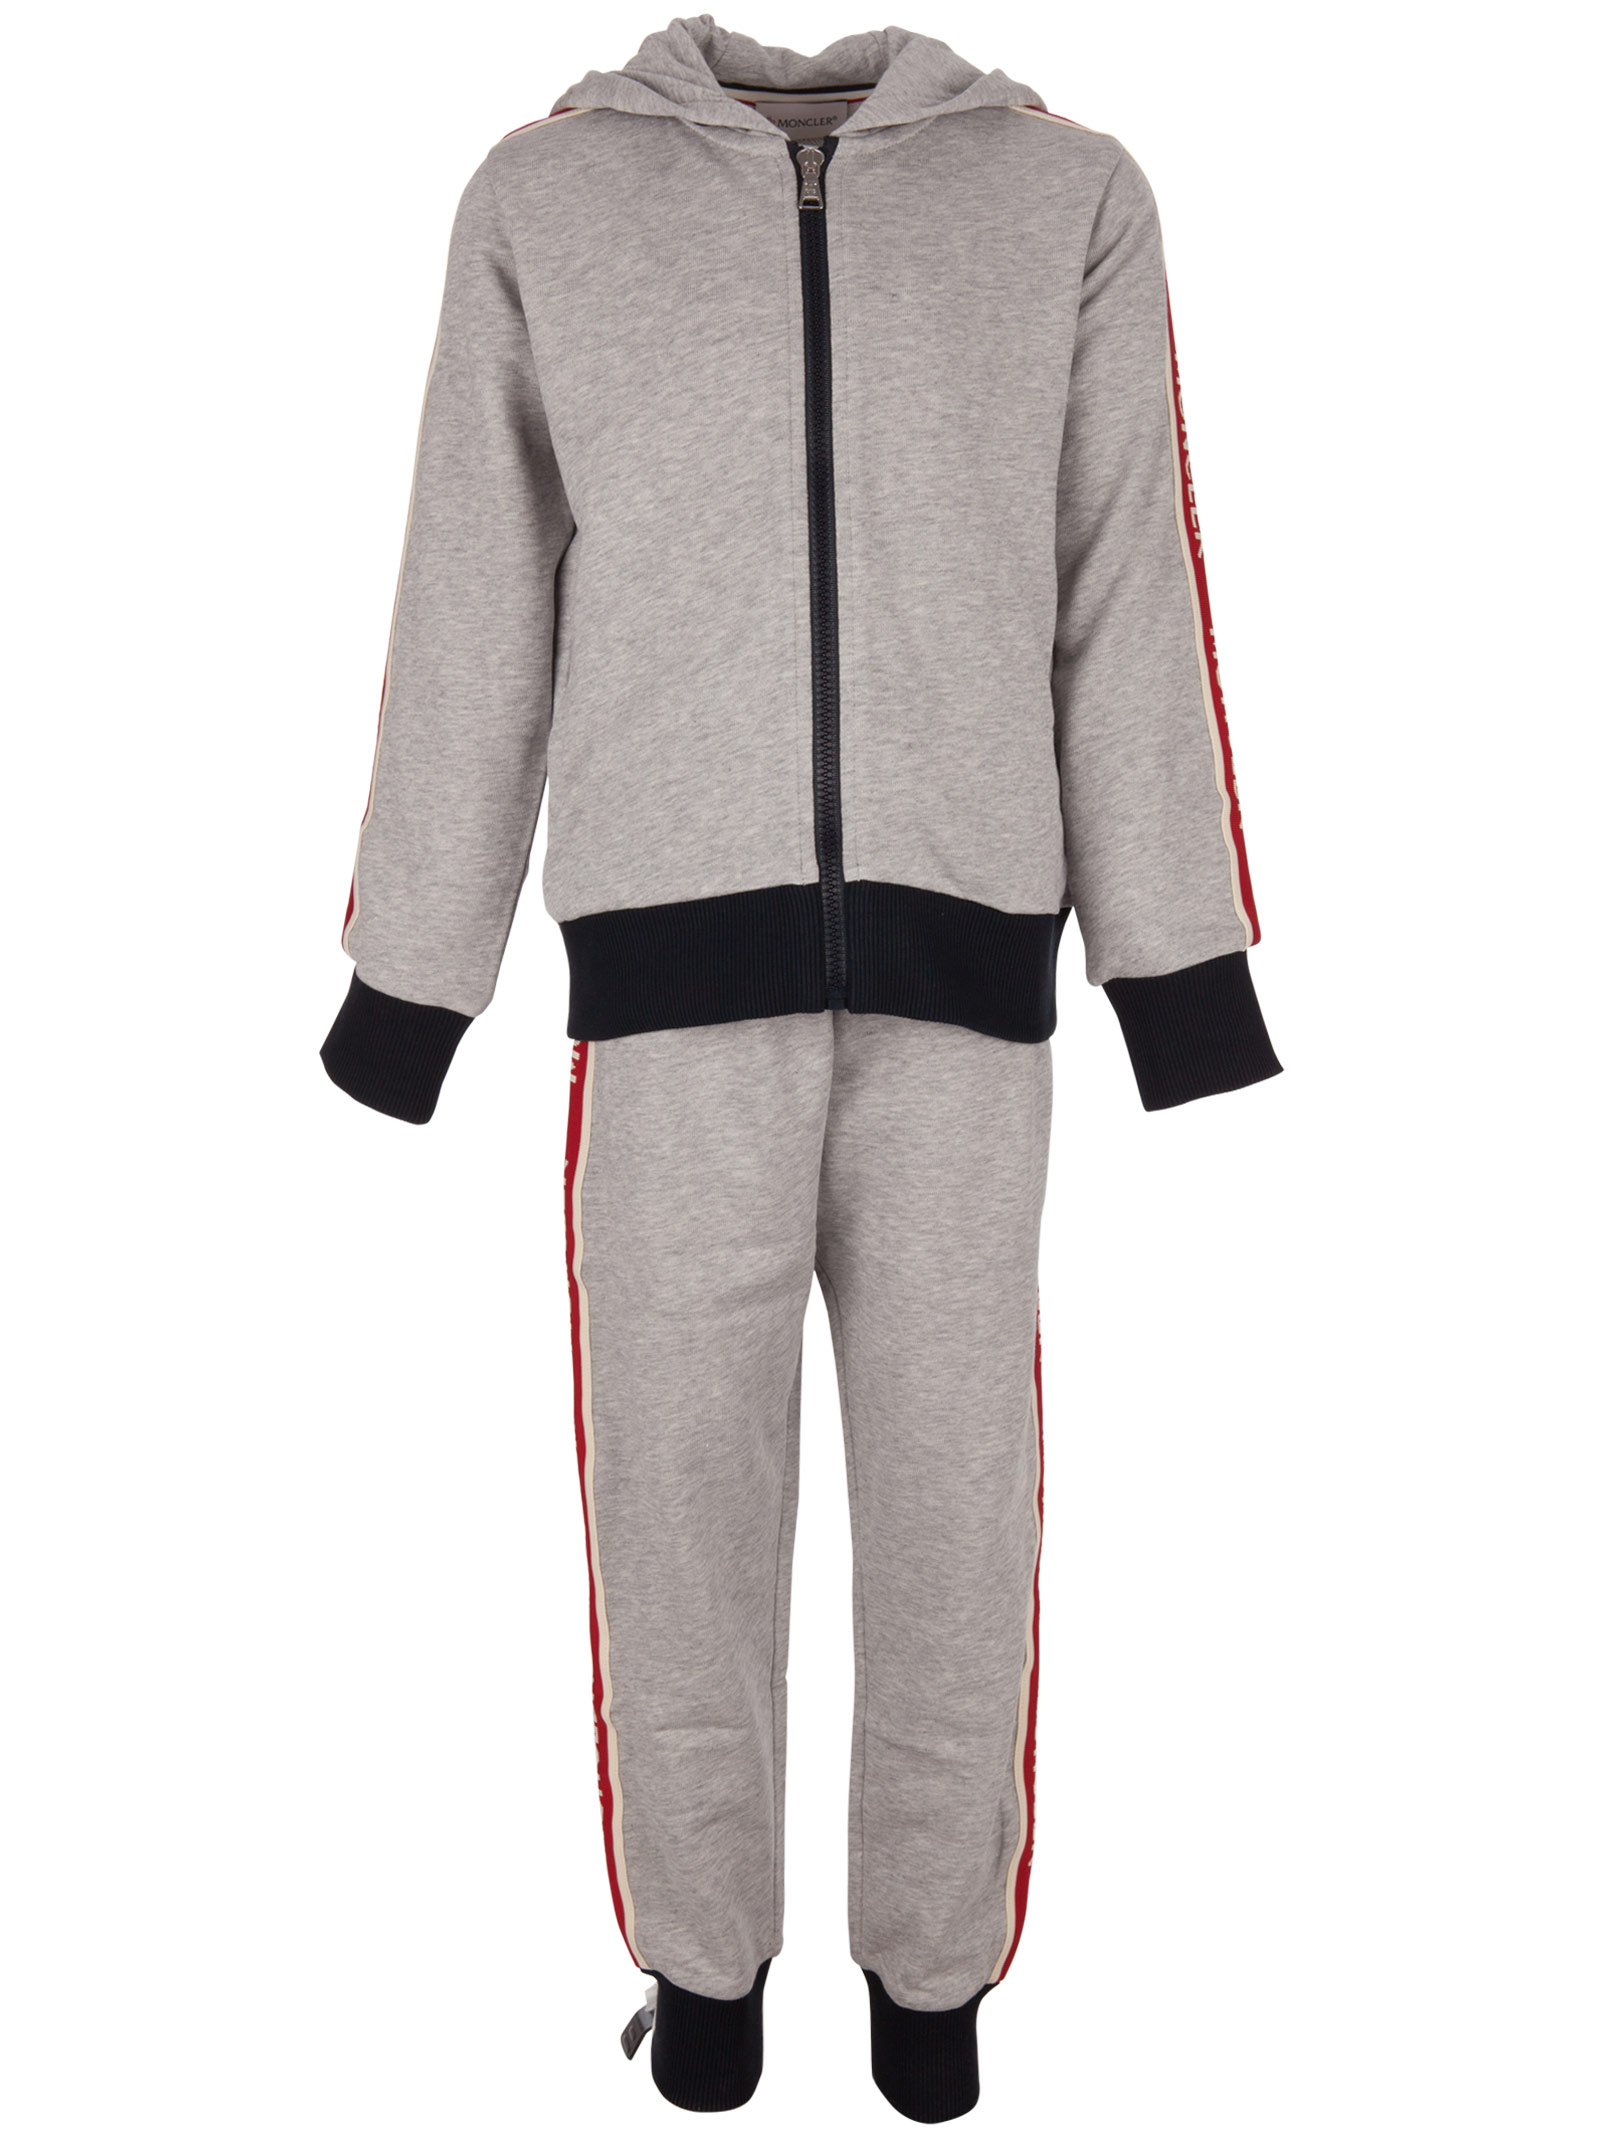 8bfb77fd078a36 Moncler Kids. Grey cotton jumpsuit for boys composed of sweatshirt with  hood and trackpants